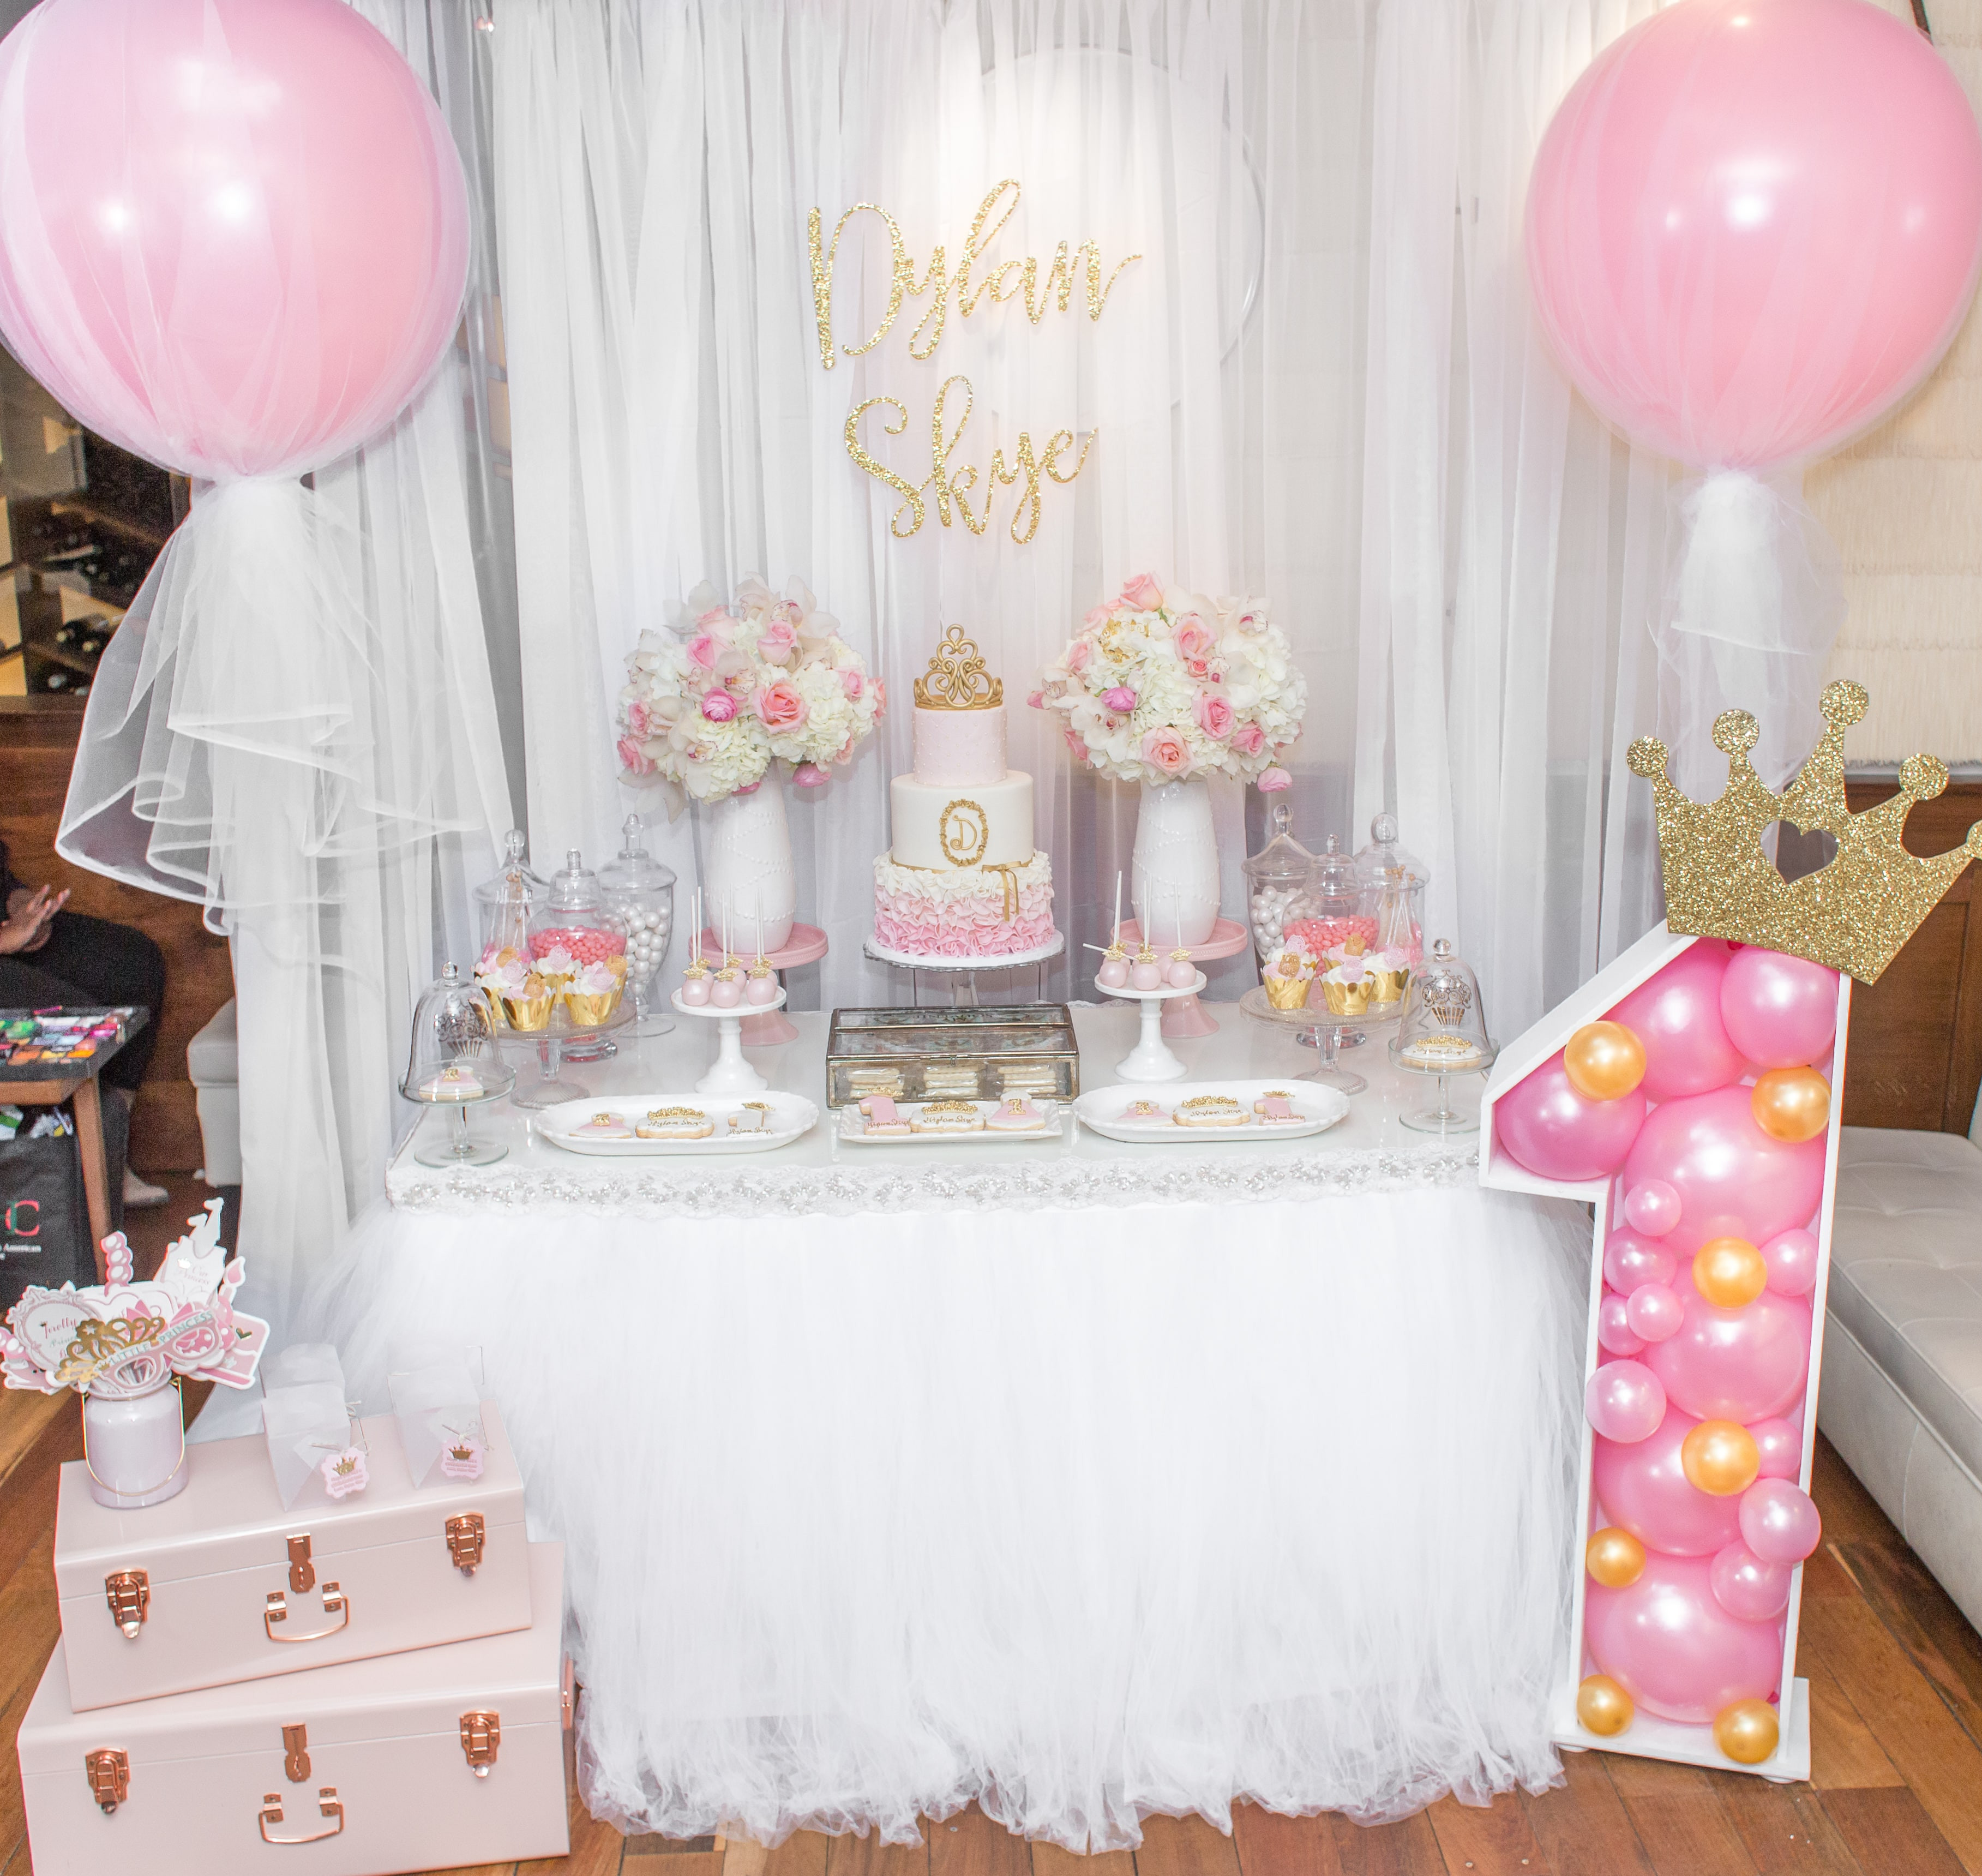 Best ideas about First Birthday Party Decorations . Save or Pin Princess First Birthday Party Now.